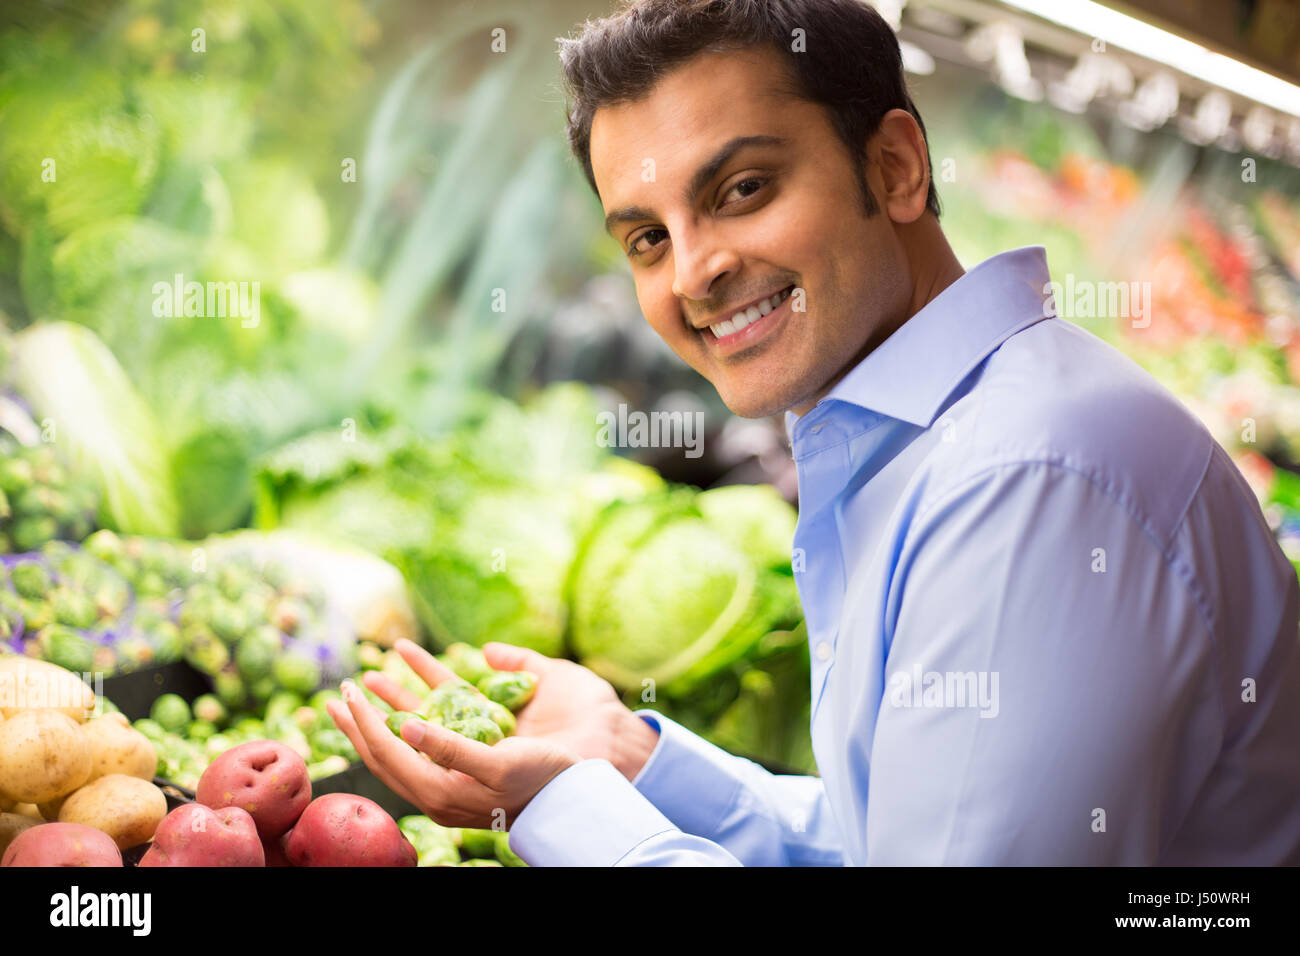 Closeup portrait, handsome young man in blue shirt picking up green brussel sprouts, choosing vegetables in grocery - Stock Image